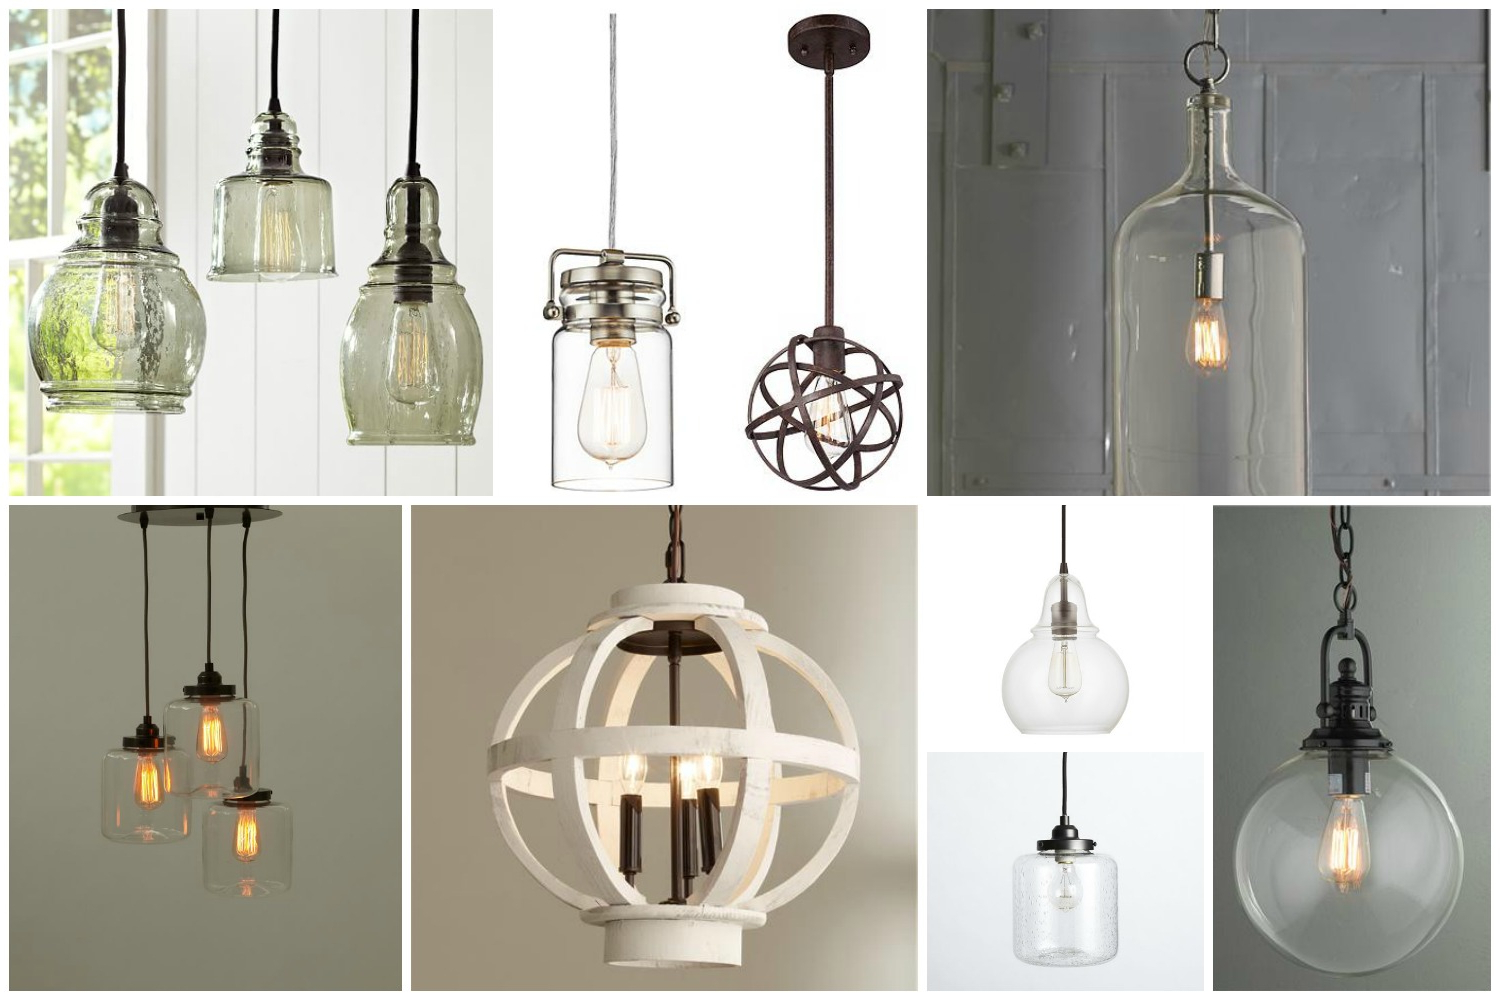 Fixer Upper Inspired Modern Farmhouse Kitchen Lights Within Fashionable Gaines 5 Light Shaded Chandeliers (View 7 of 25)